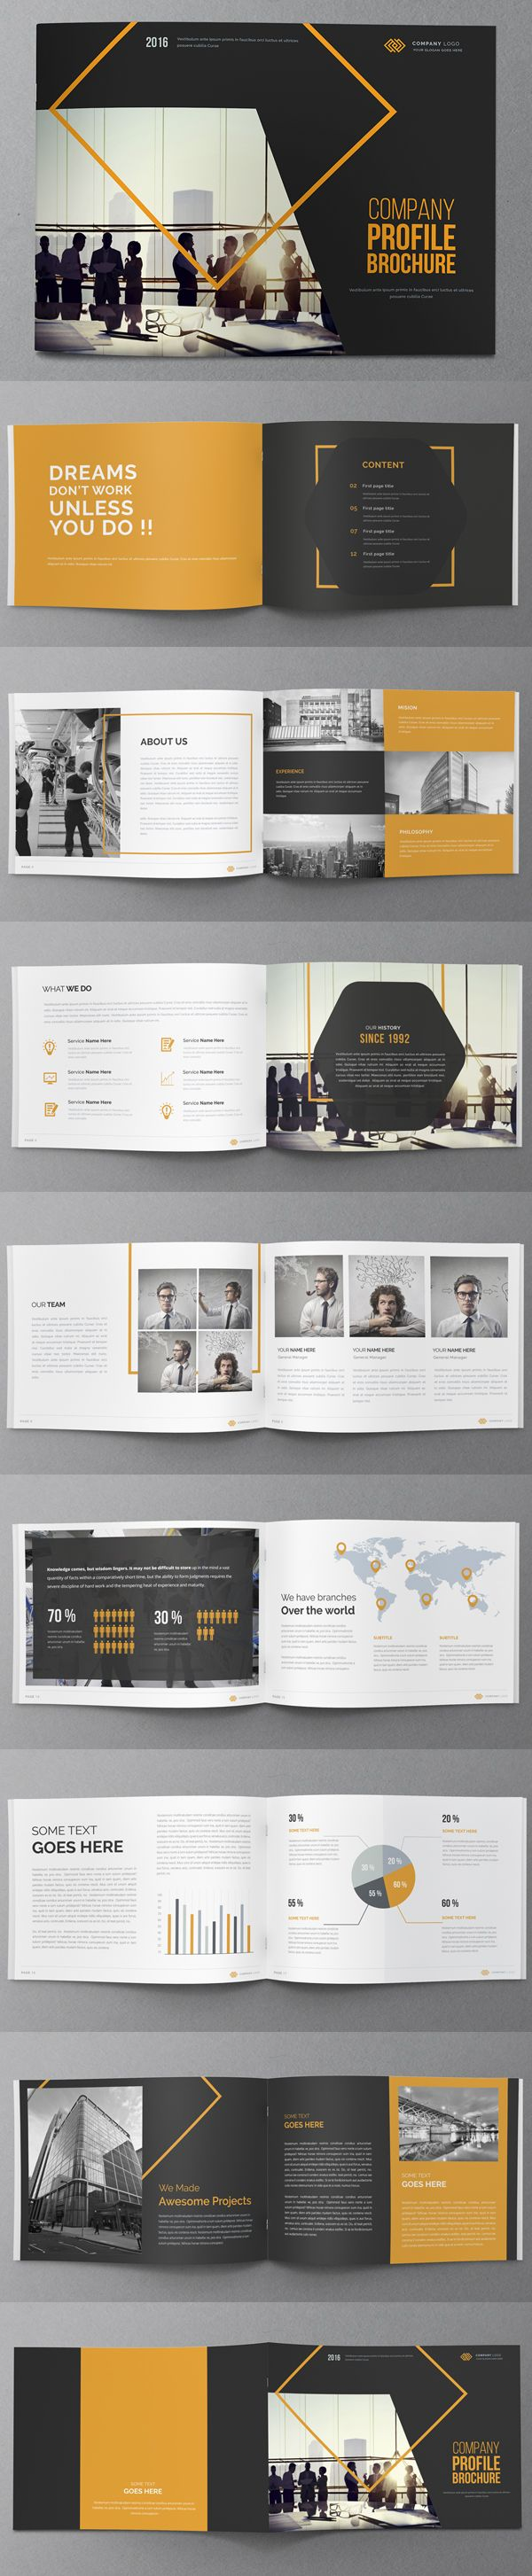 Creative Annual Report Brochure Design                                                                                                                                                      More